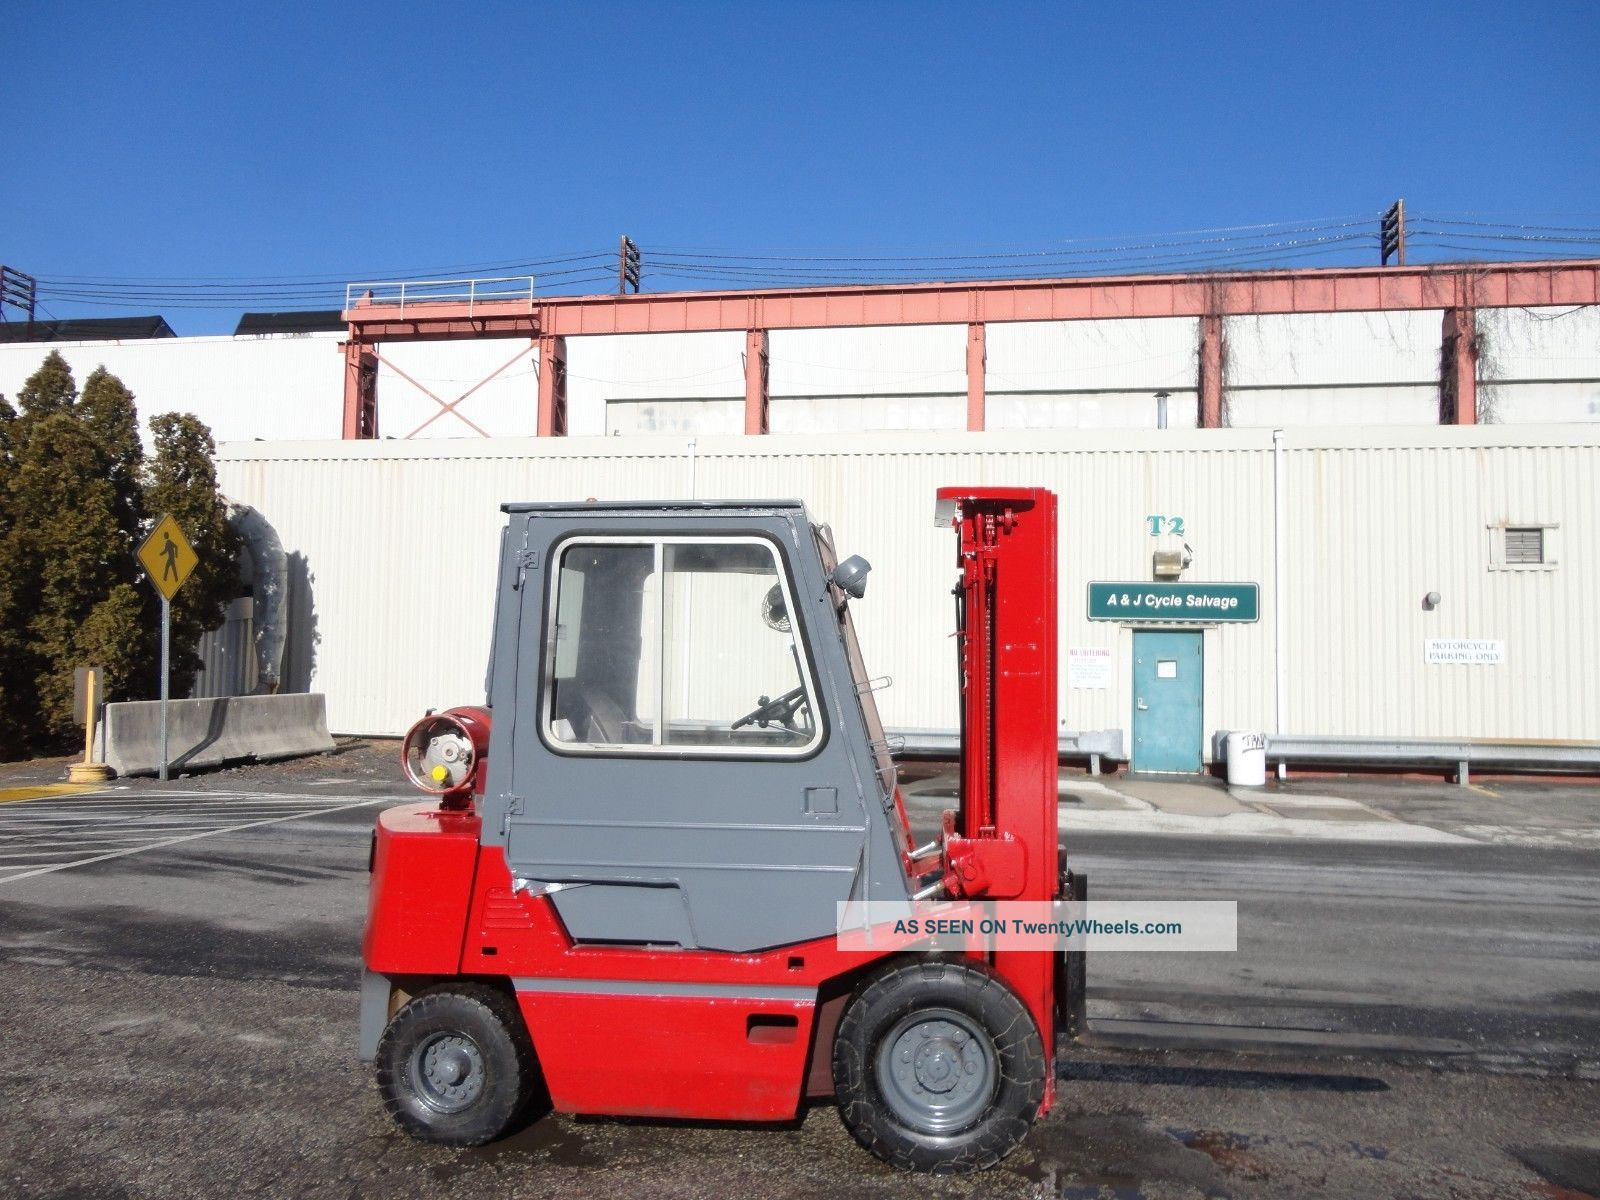 Tcm Fg25 5,  000 Lbs Pneumatic Forklift - Triple Mast - Enclosed Cab - Propane Forklifts photo